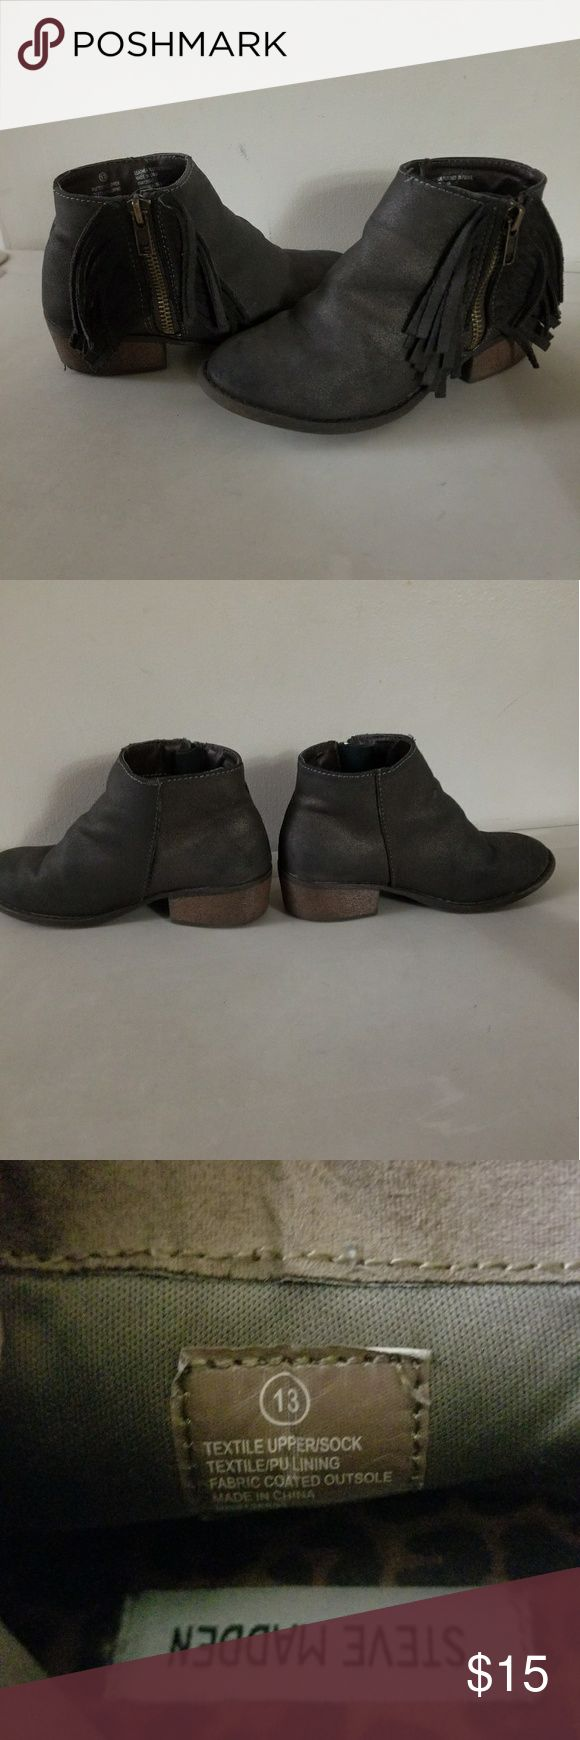 Steve Madden KIDS boots Normal used condition boots  FOR KIDS Steve Madden Shoes Boots